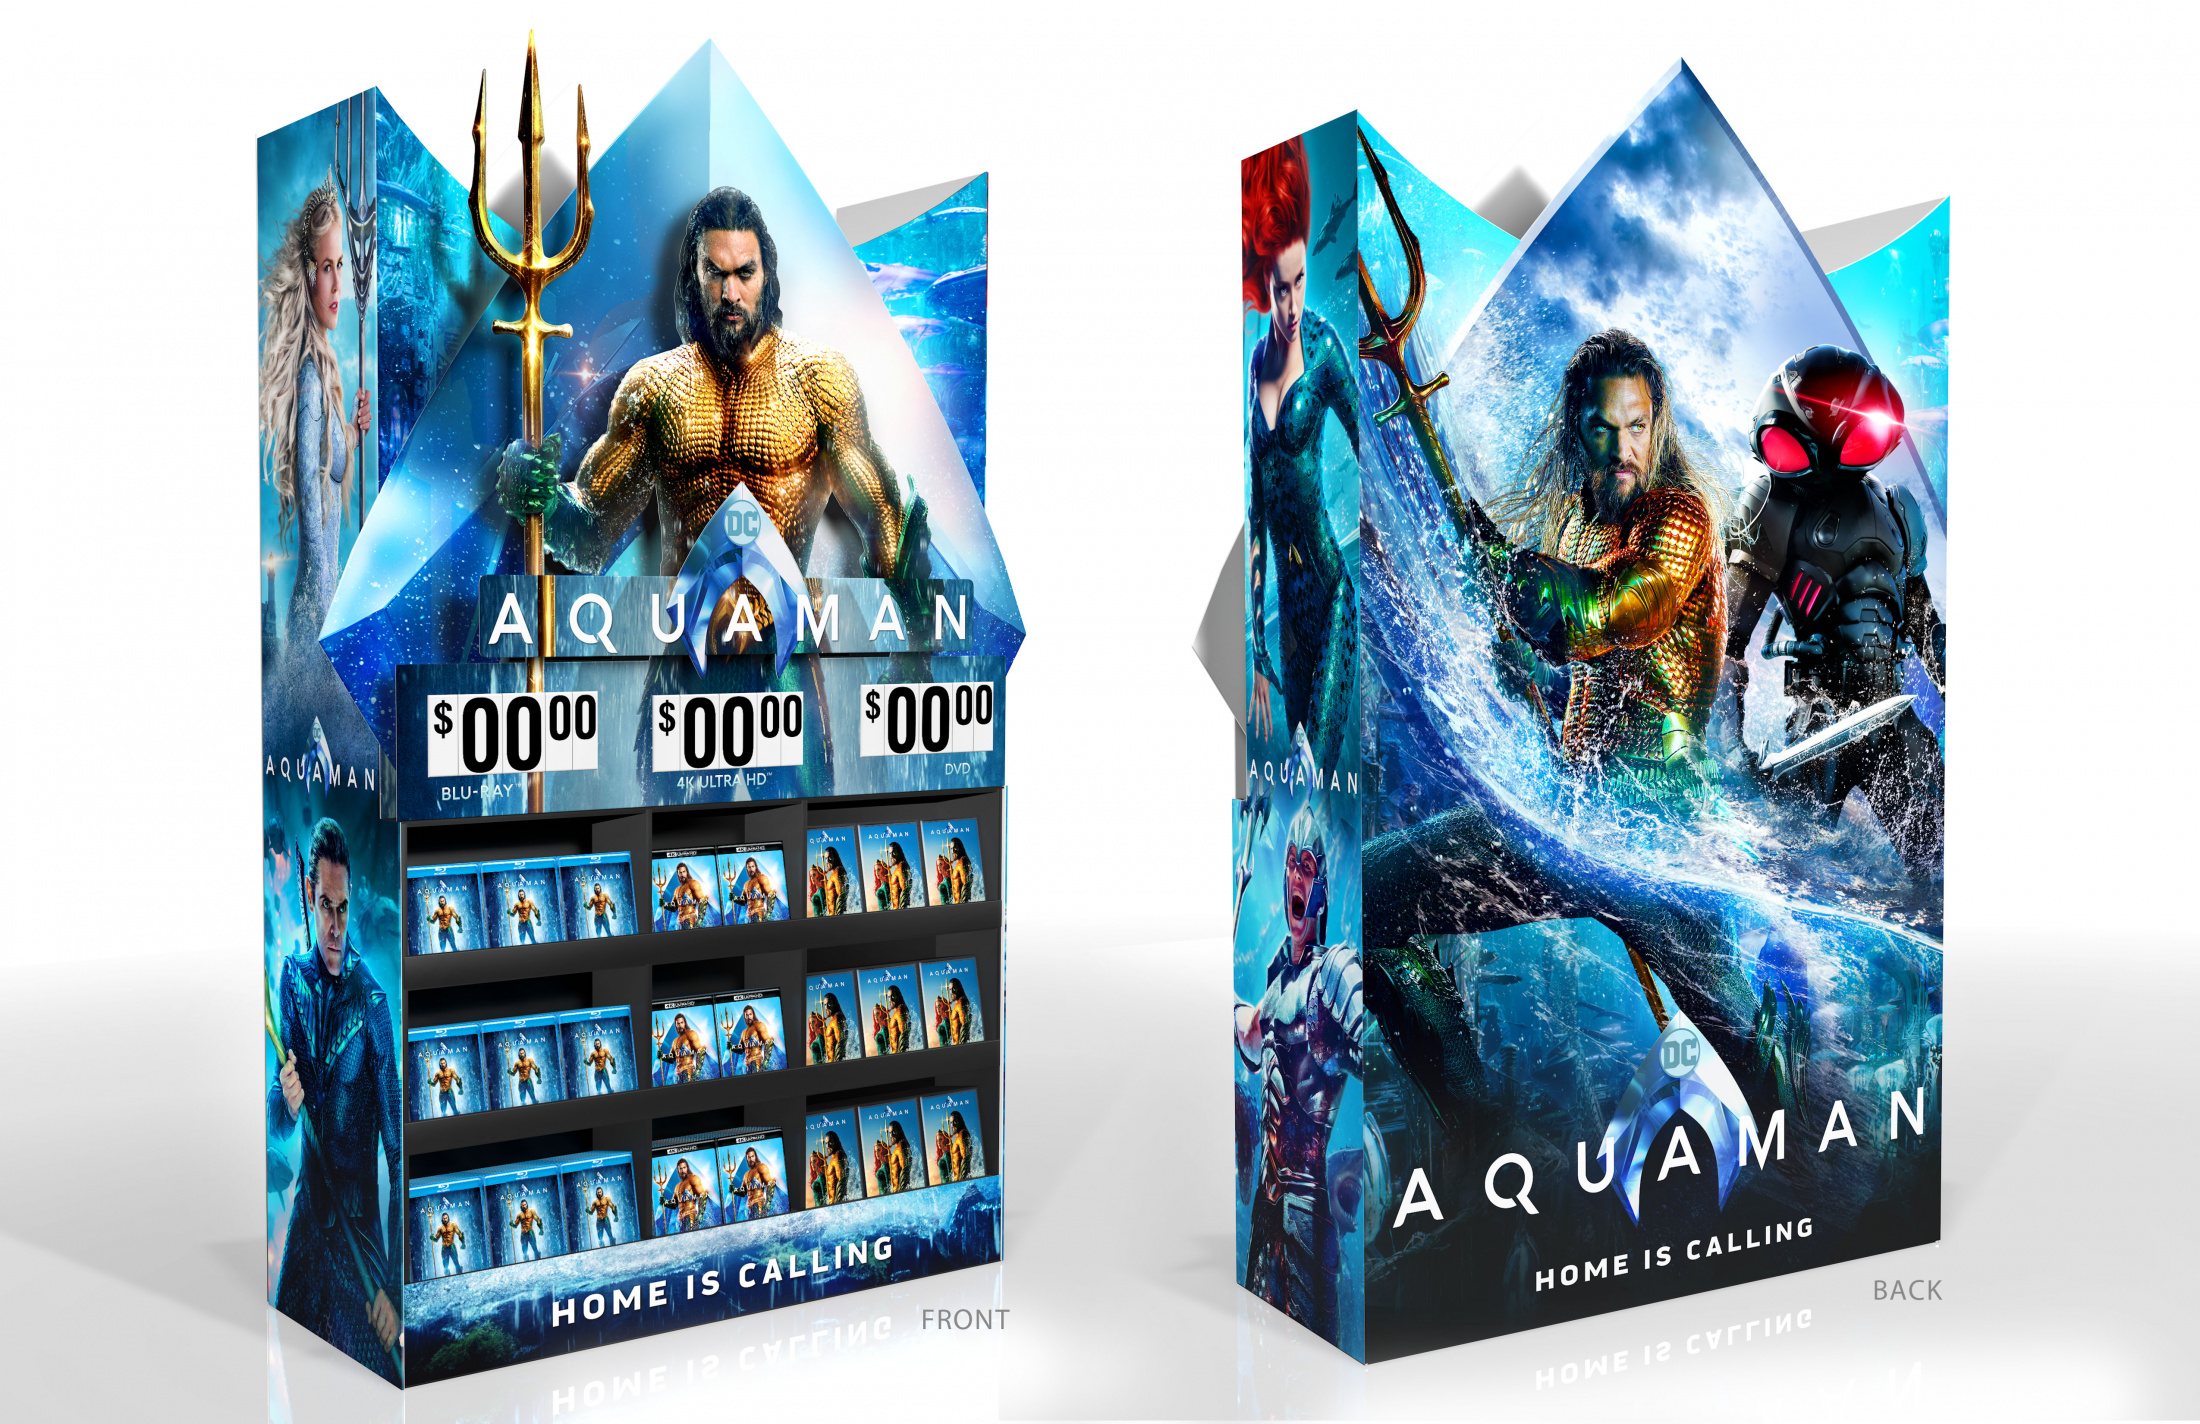 Image Media for Aquaman Home Entertainment Walmart Display Mini Wow Cube